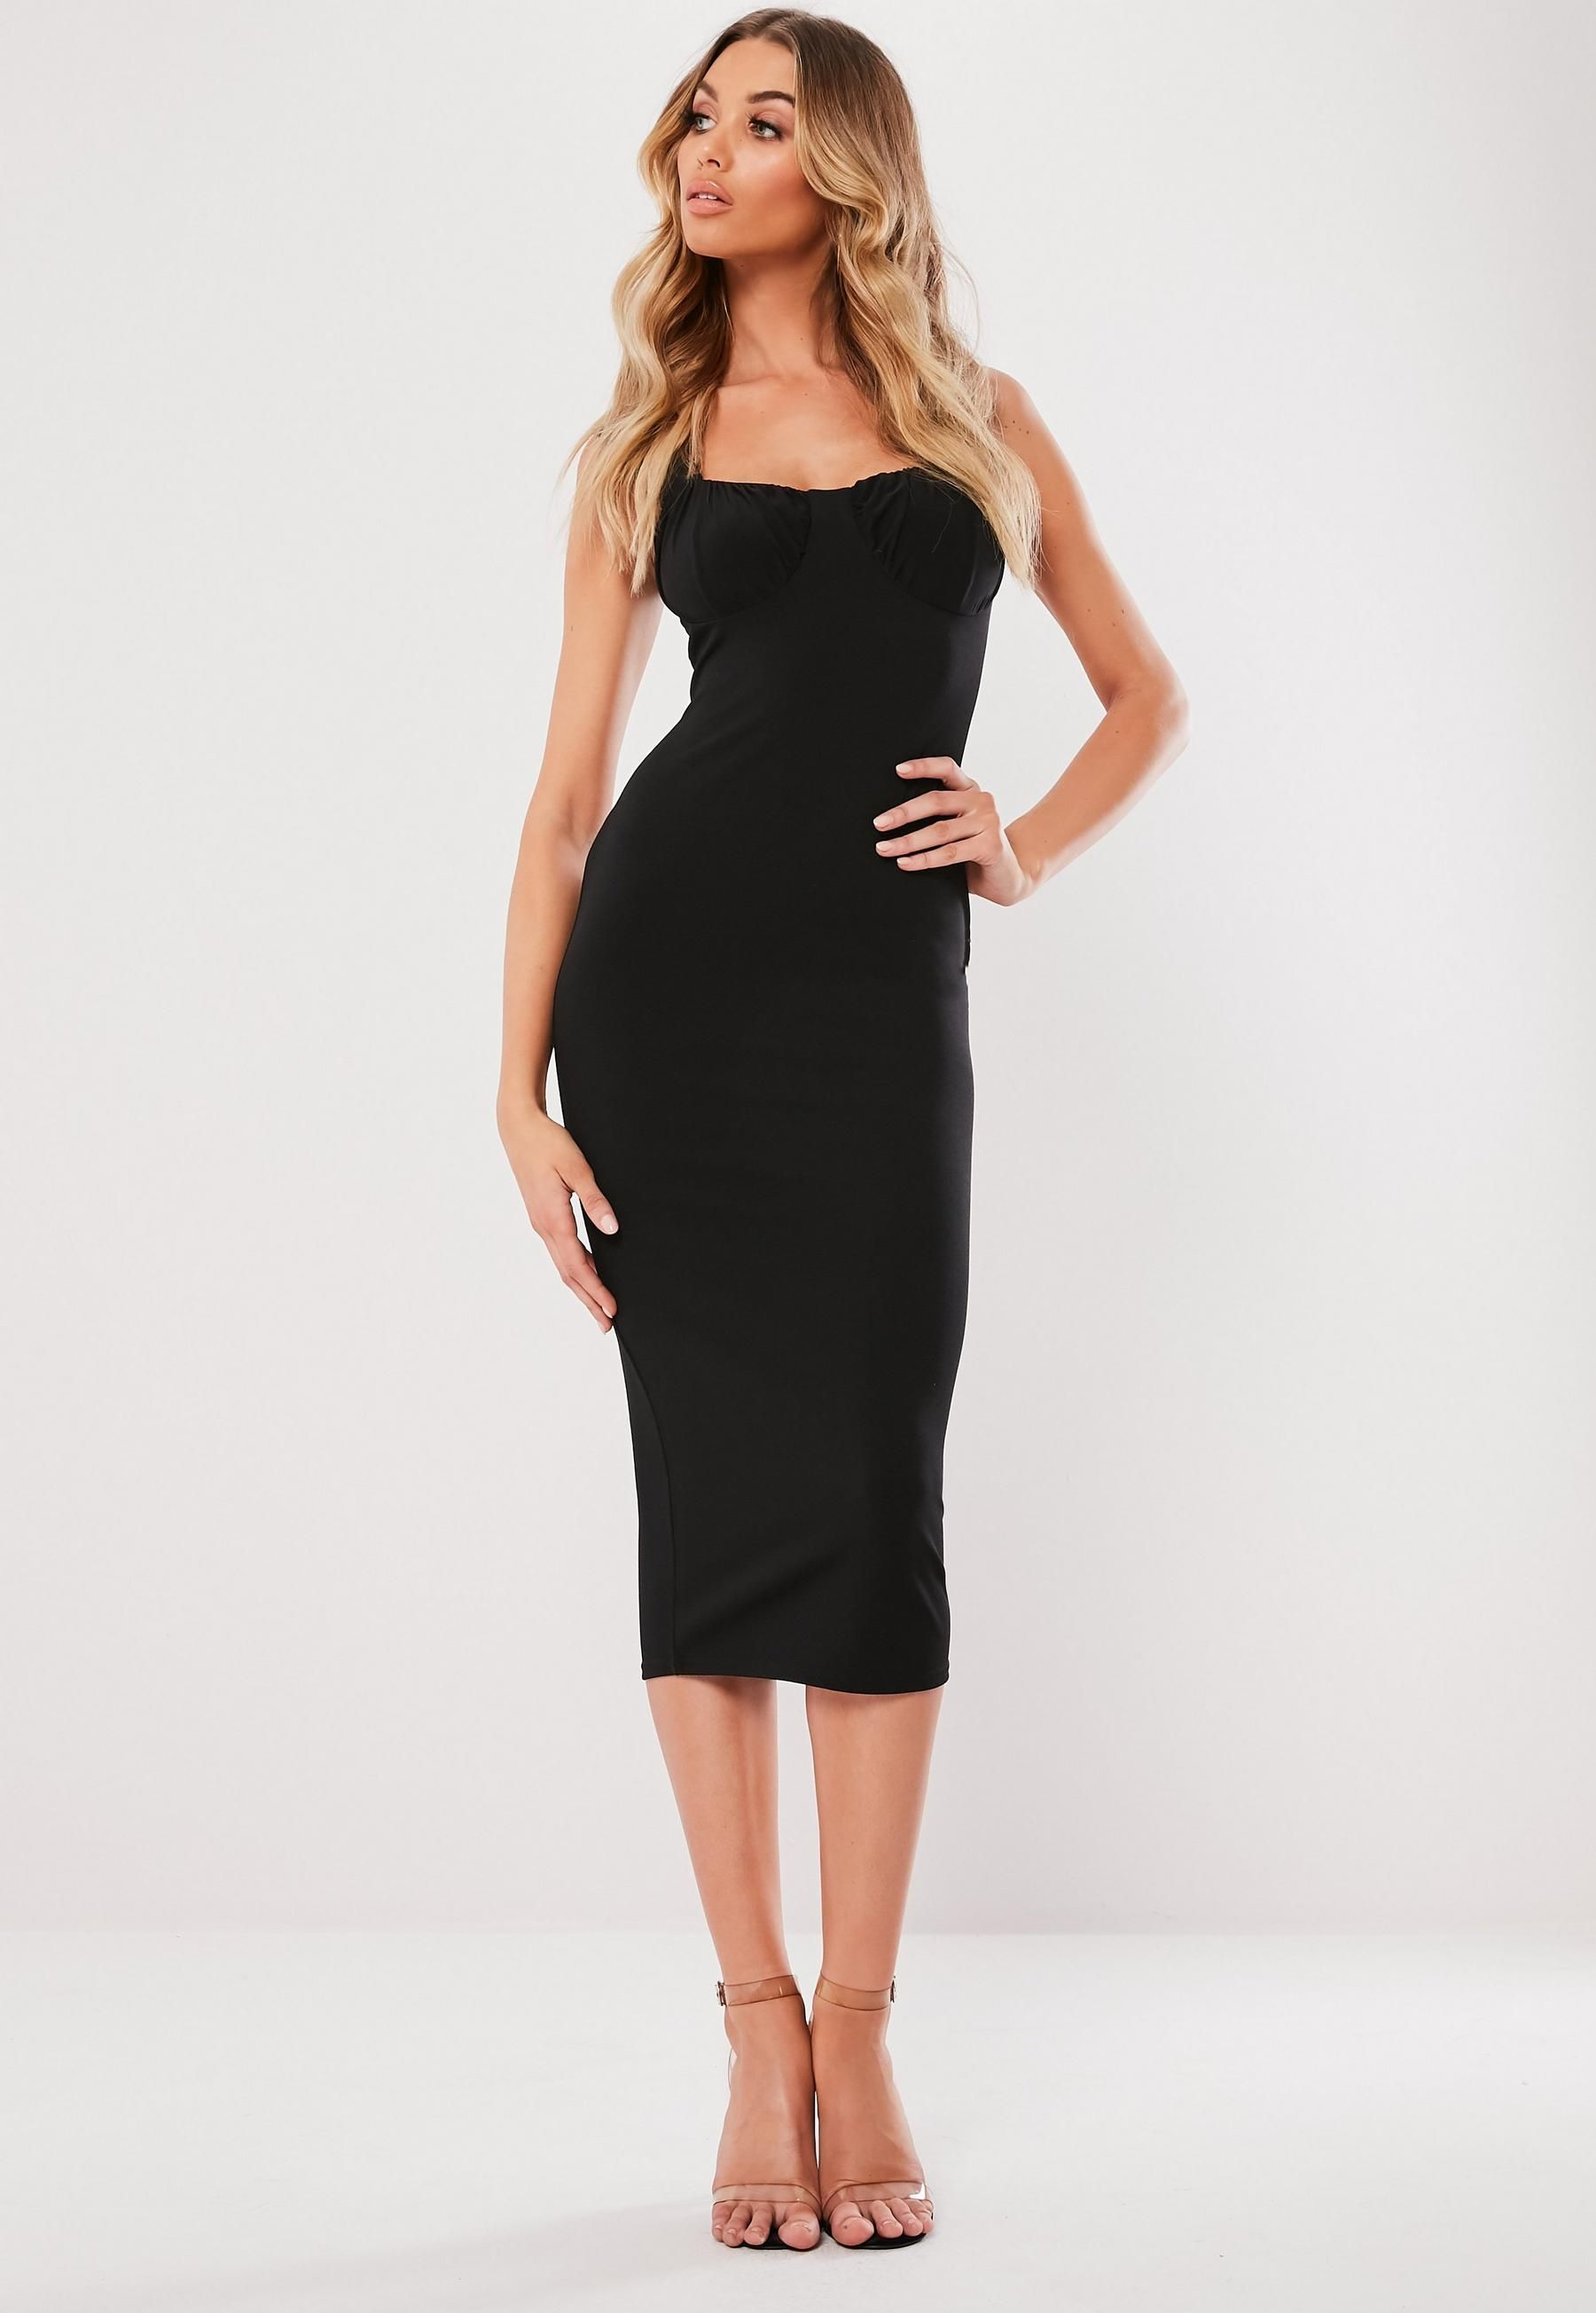 321c277074d3 Missguided - Black Ruched Cup Bodycon Midi Dress in 2019 | 20th ...